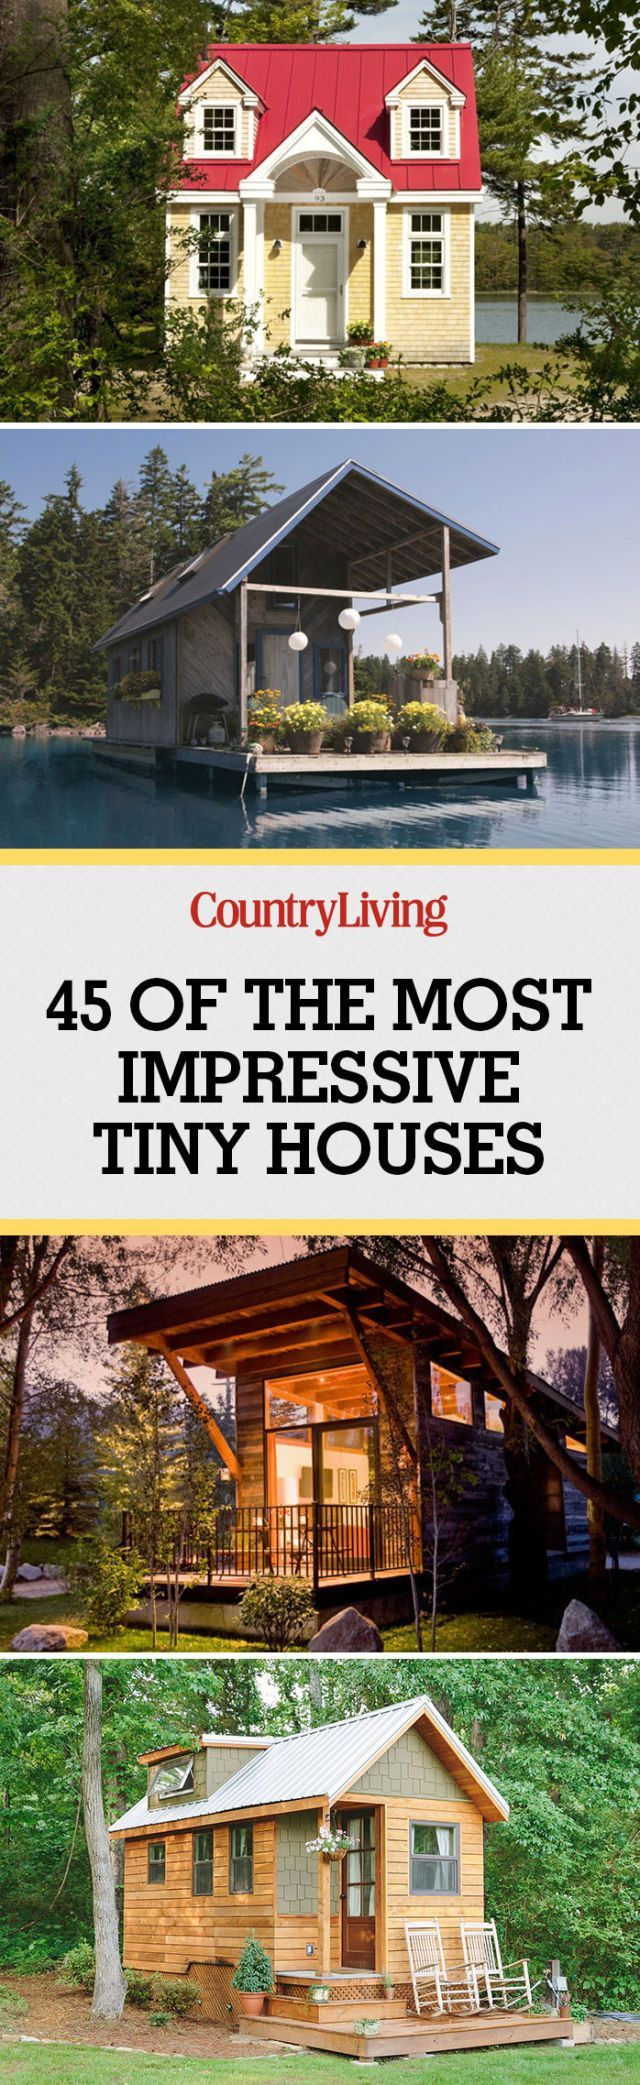 cool 45 of the Most Impressive Tiny Houses Ever by http://www.danazhome-decor.xyz/tiny-homes/45-of-the-most-impressive-tiny-houses-ever/